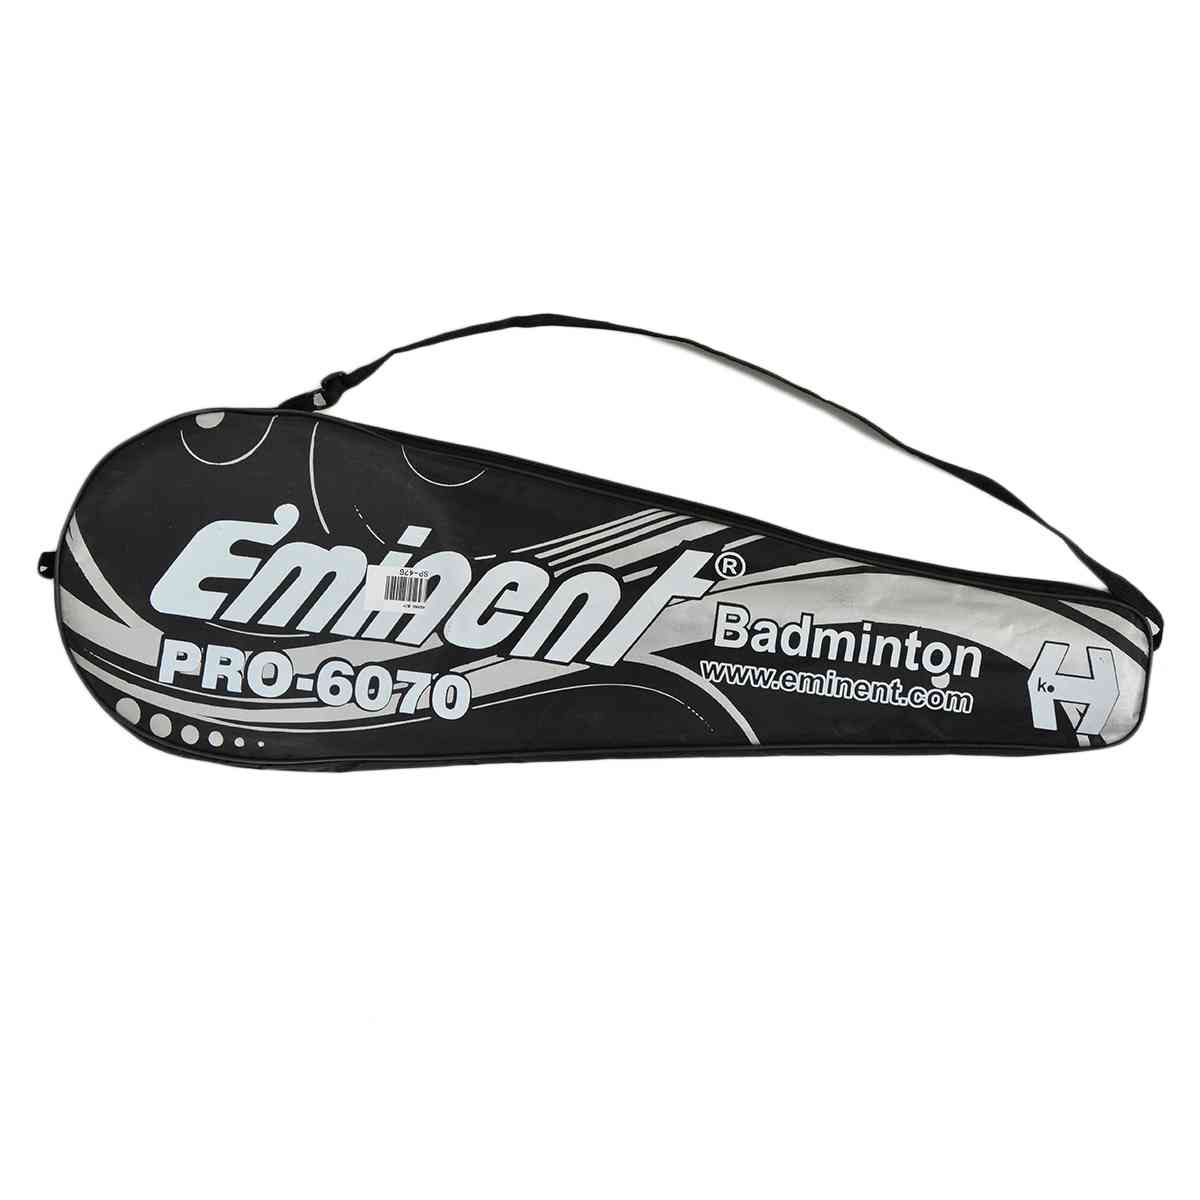 2 Pcs Eminent Pro 6070 Badminton Rackets With Bag (With Joint, 26 Inch Length)